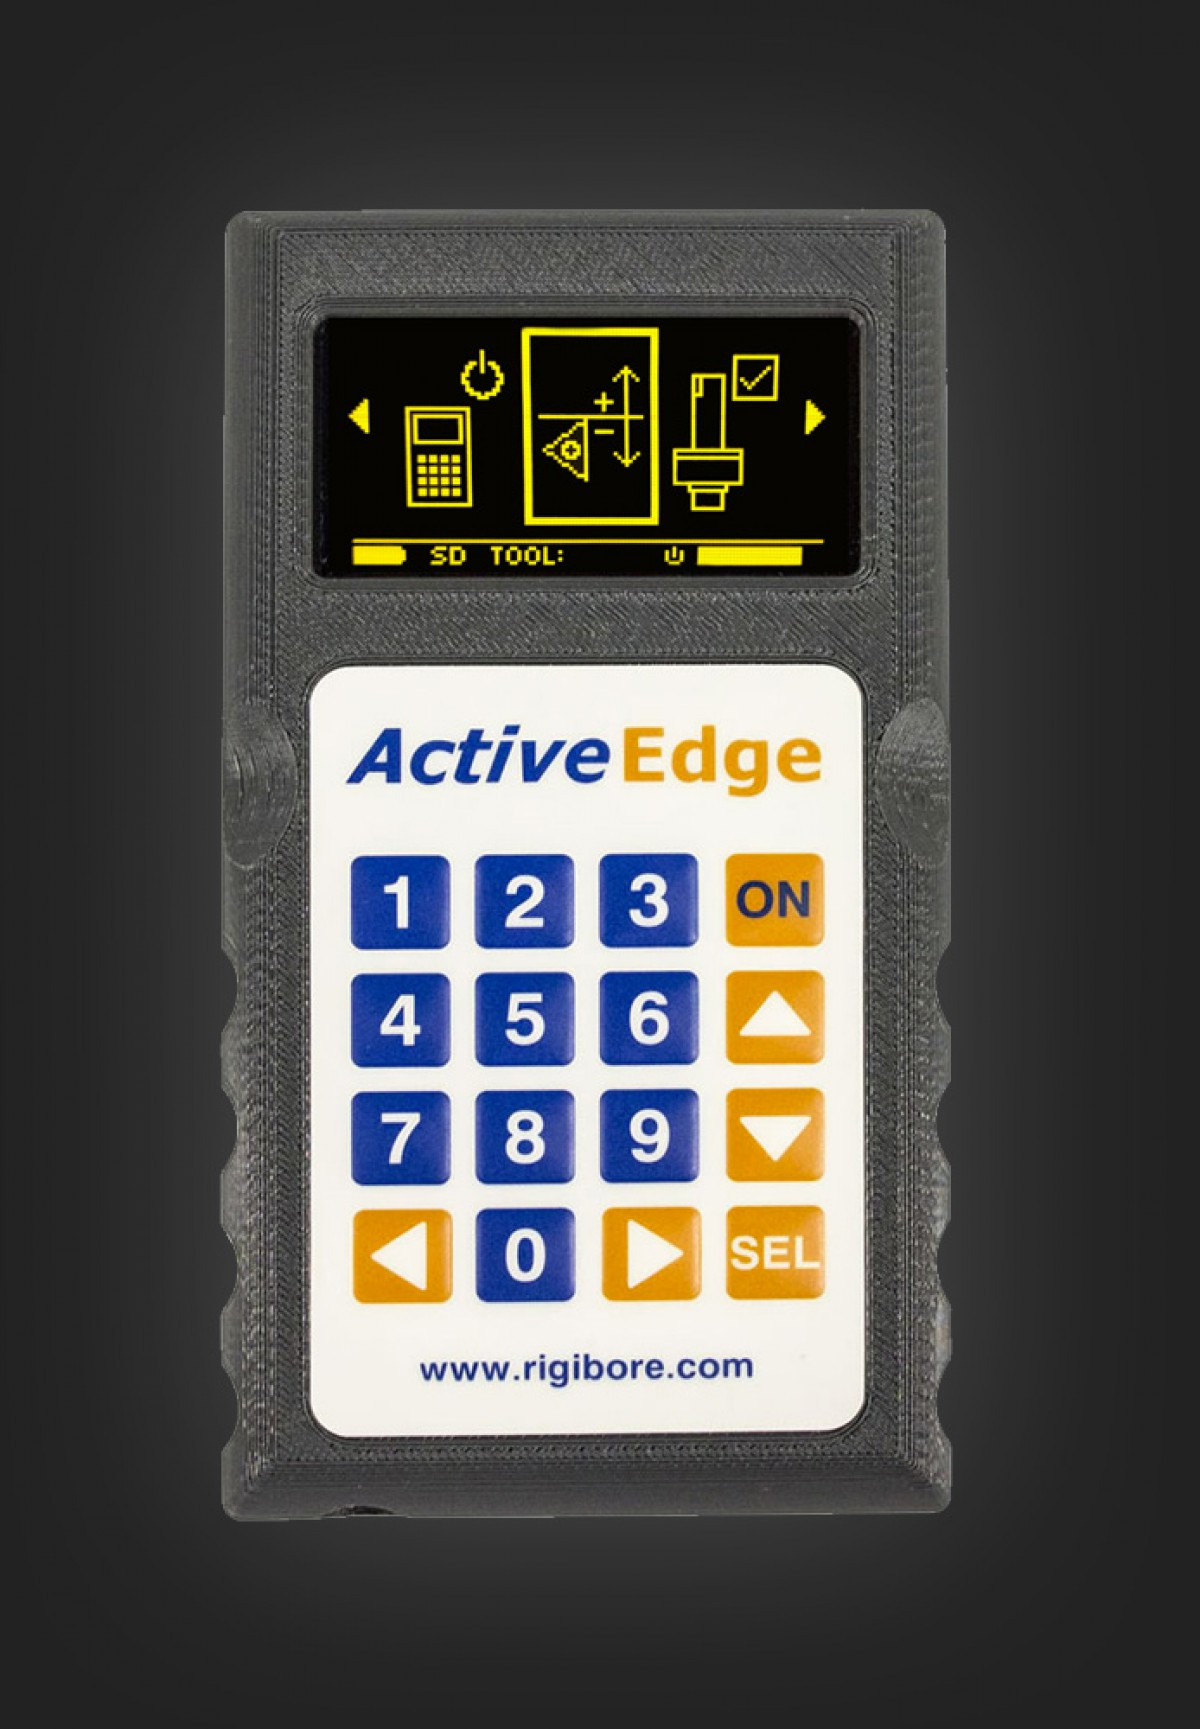 ActiveEdge, Micron Accurate Wireless Boring Tool Adjustments – Rigibore